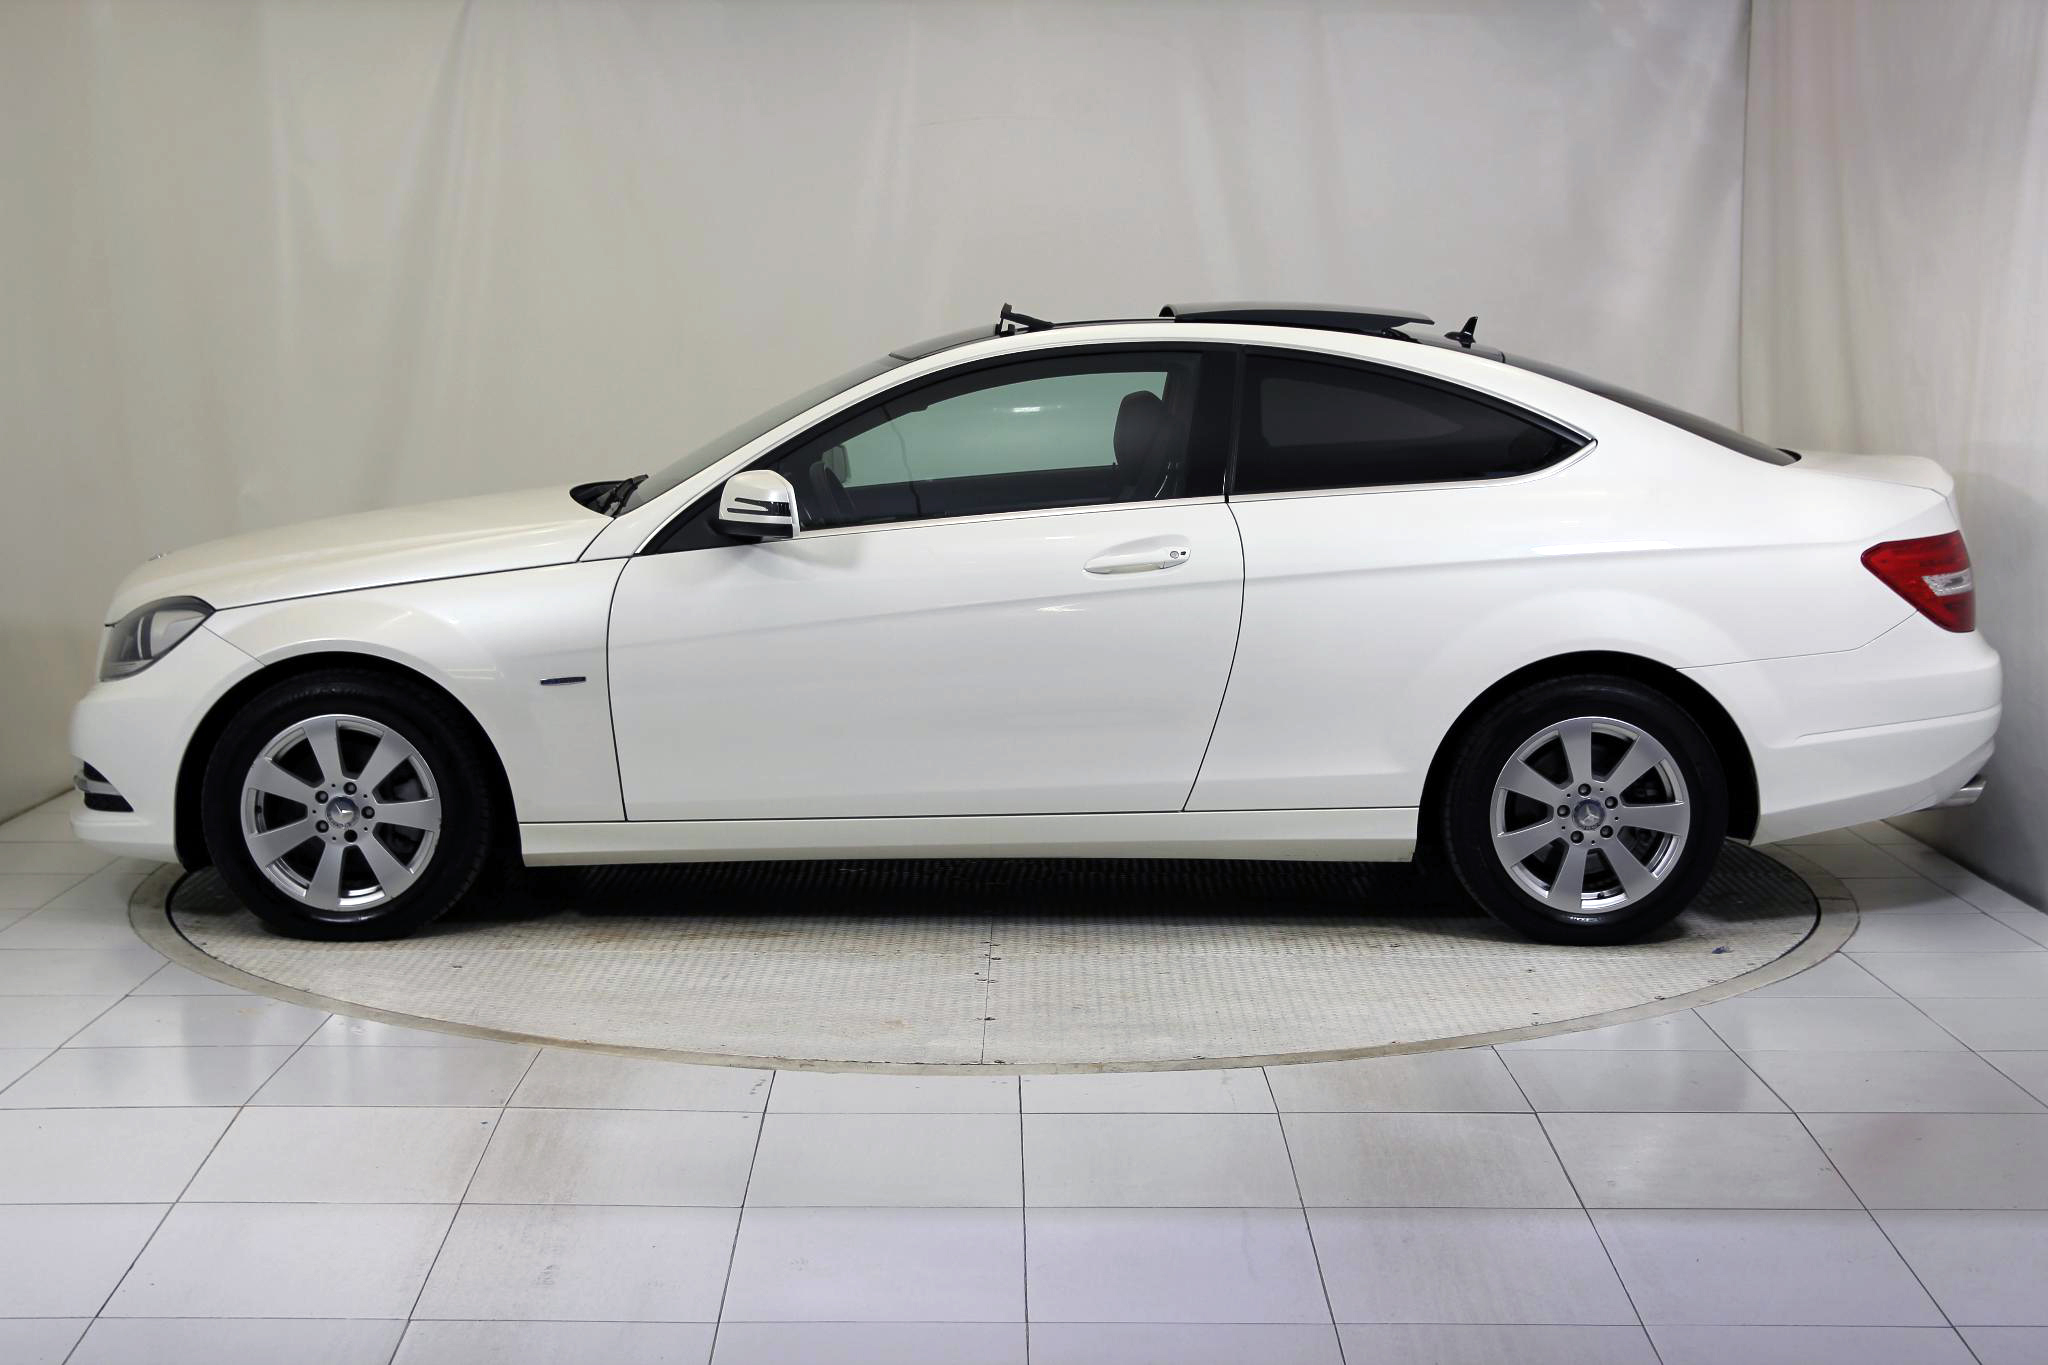 Mercedes-Benz Clase C CLASE C COUPE 220 CDI BLUE EFFICIENCY imagen 9